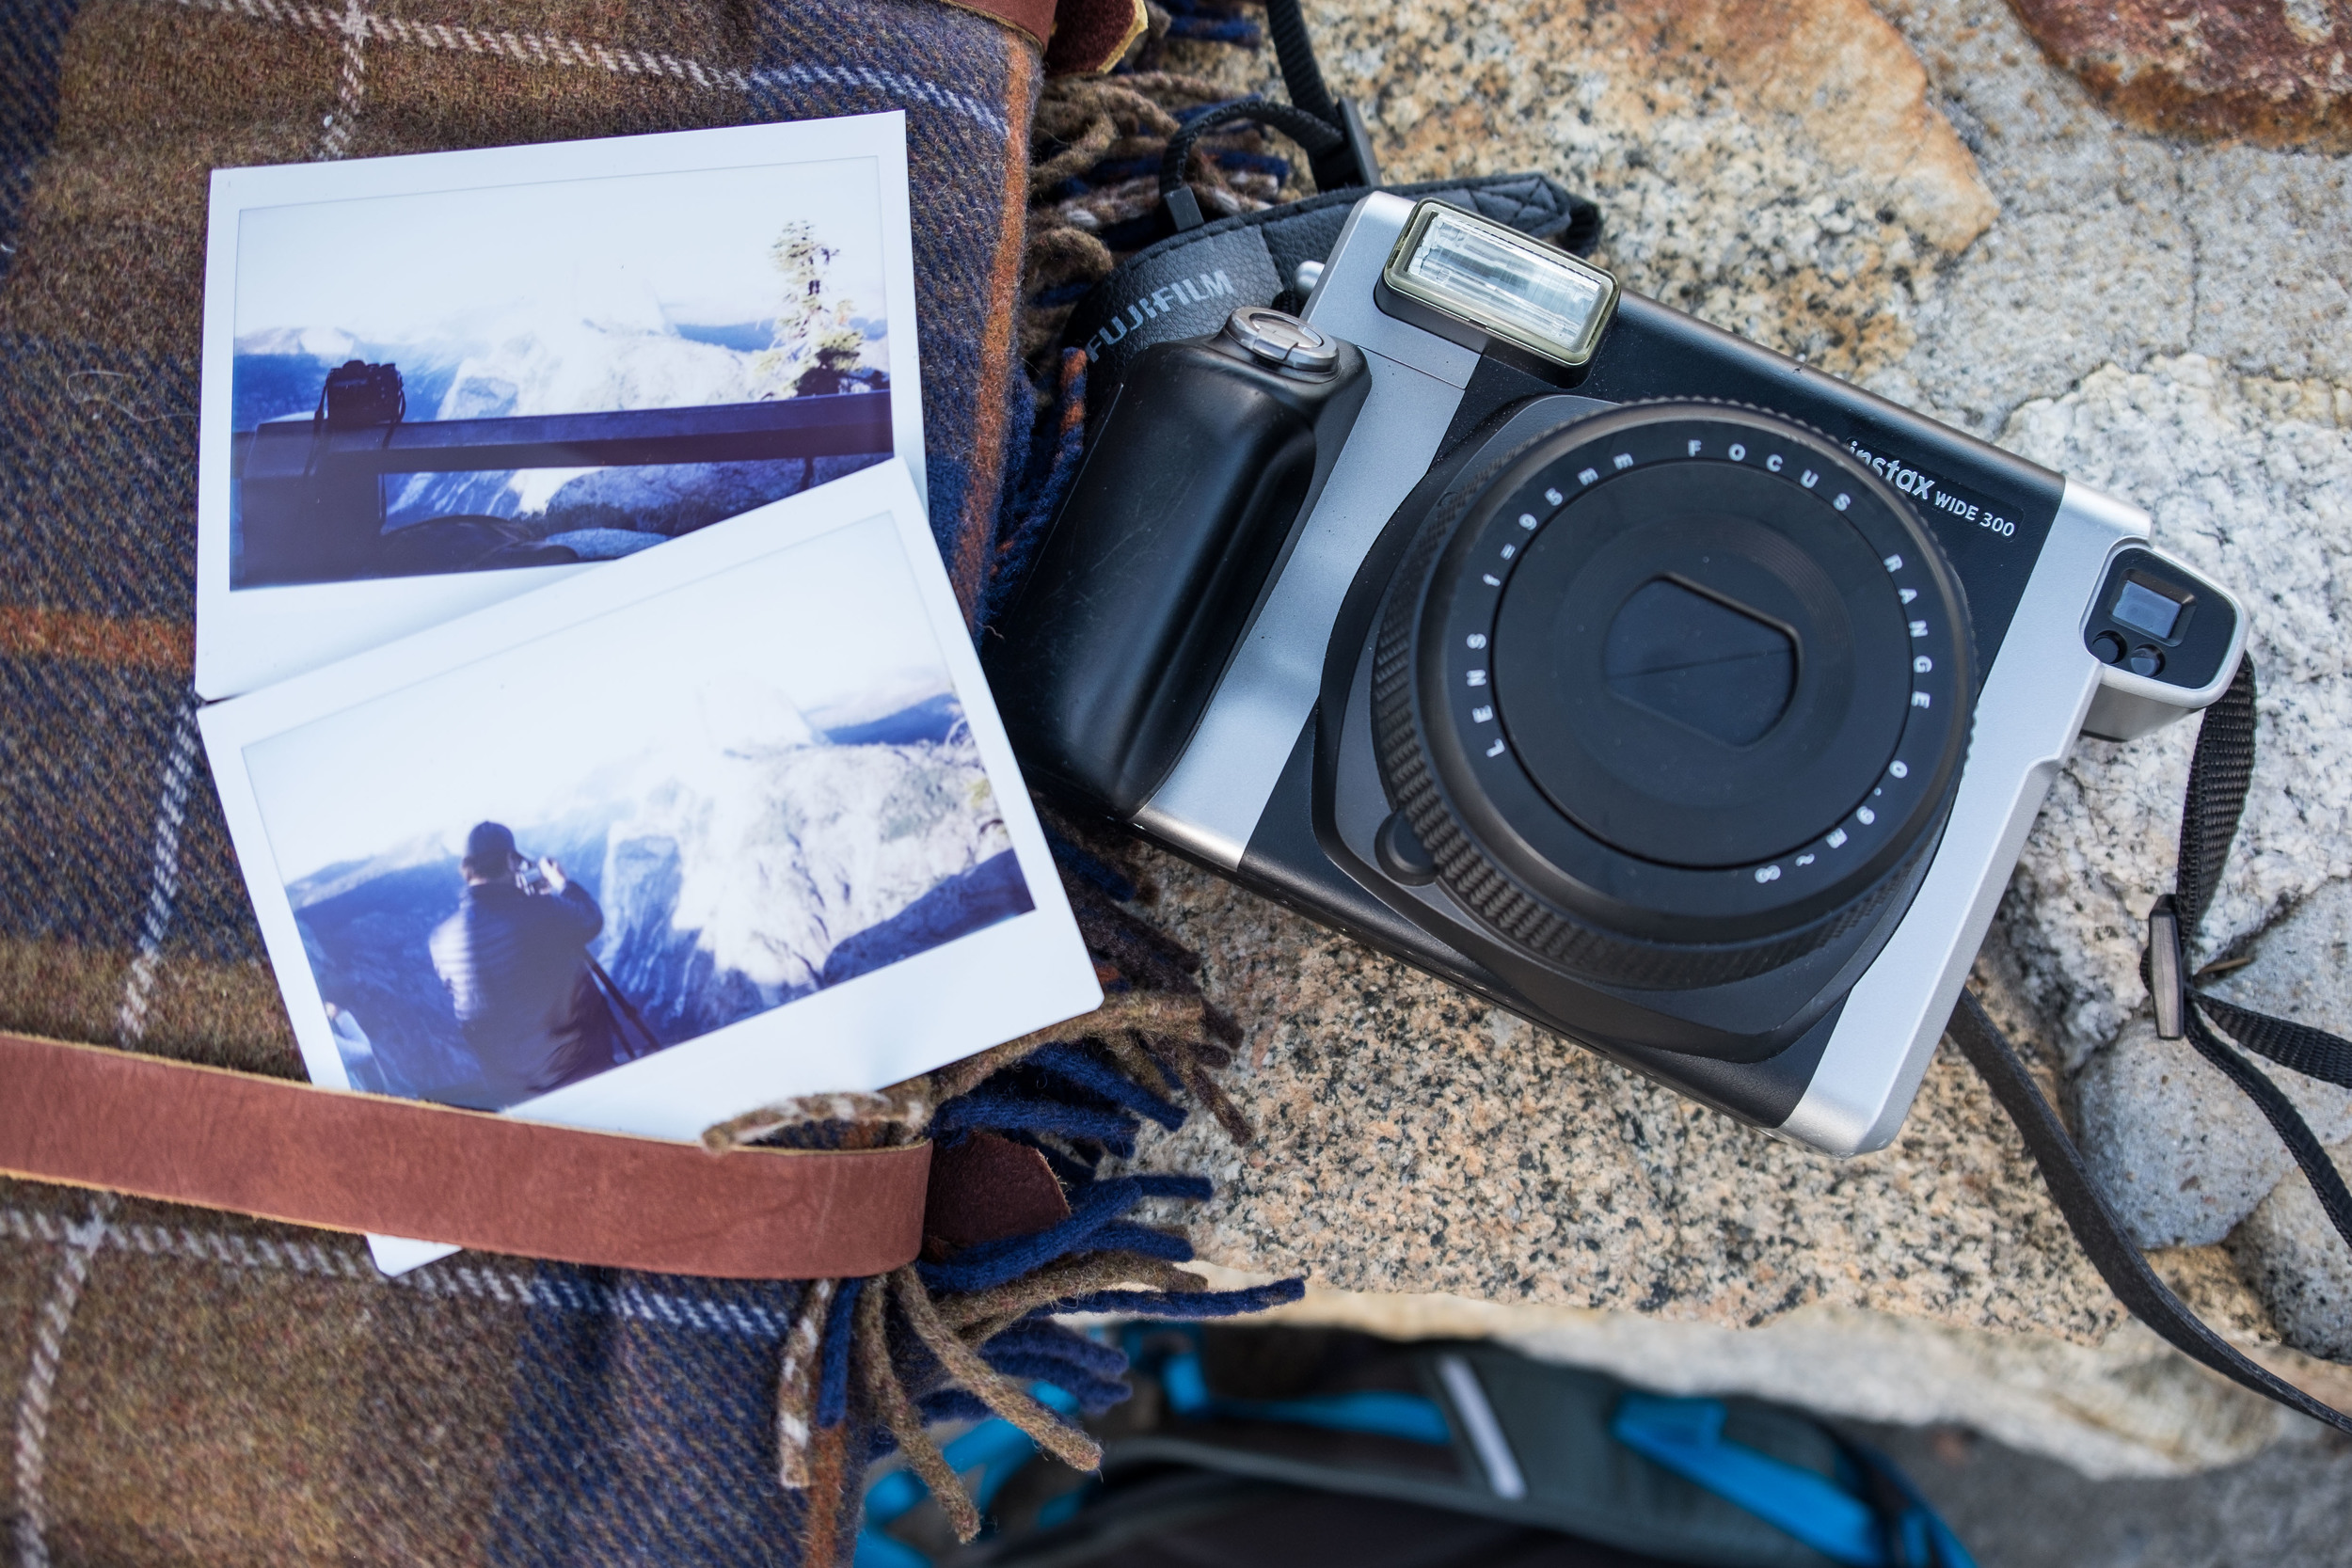 Our Fujifilm Instax readies for a photography picnic at Tunnel View in Yosemite National Park.